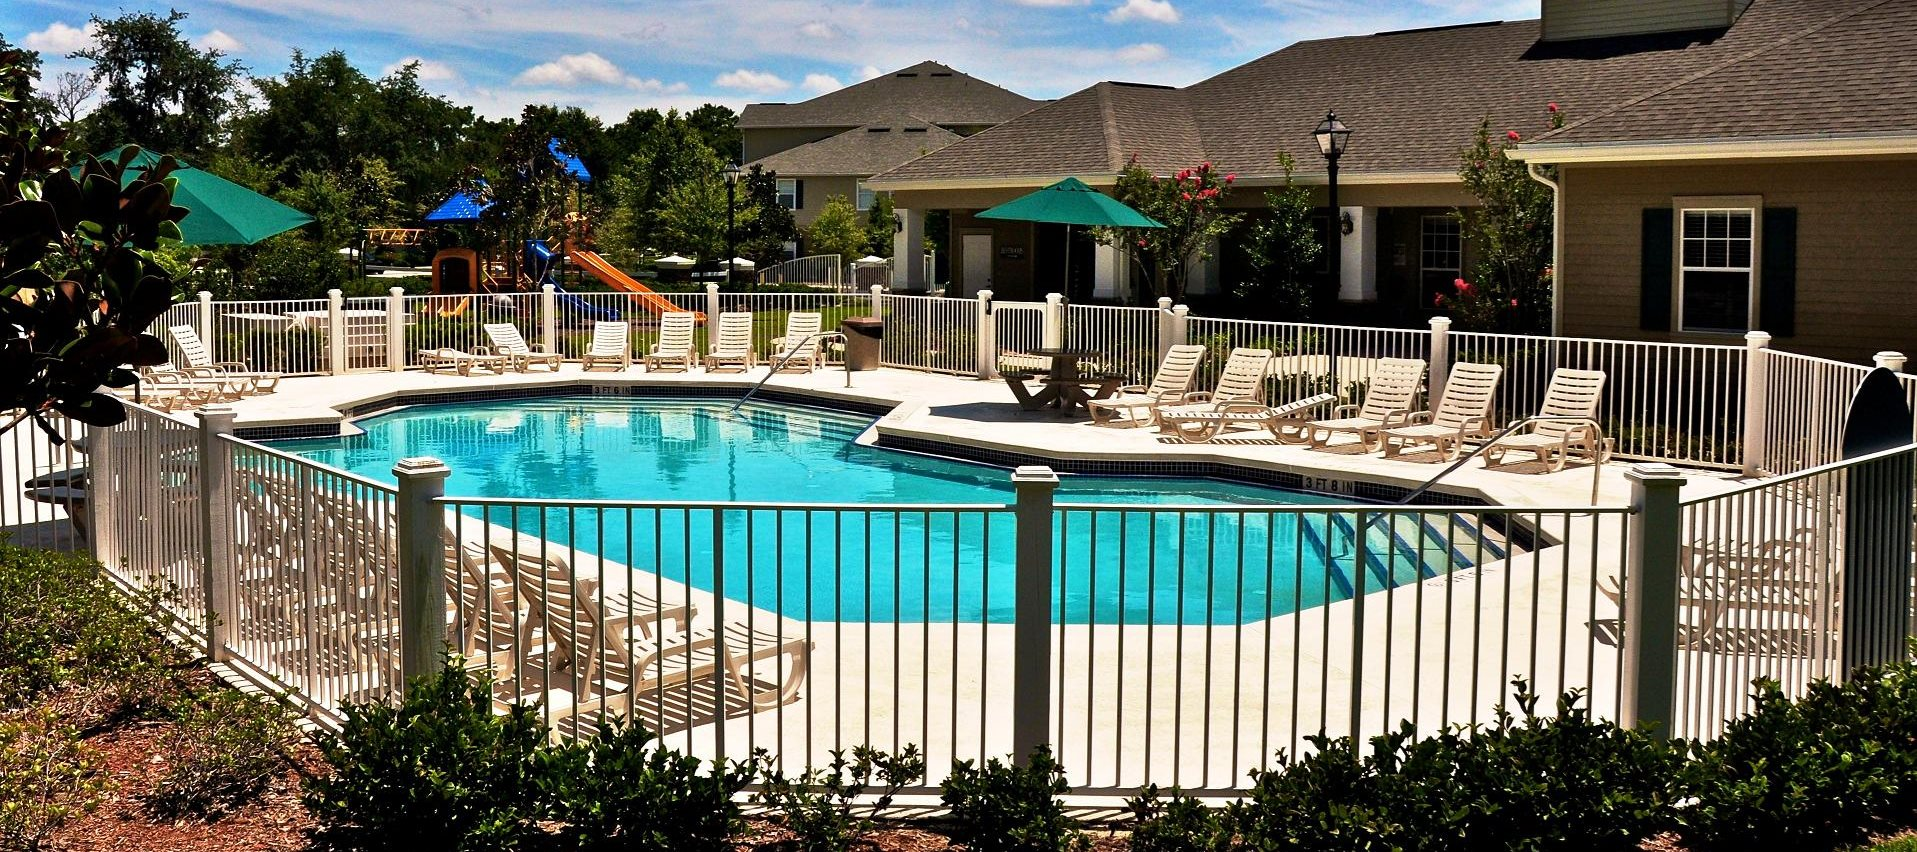 Brookwood Forest Apartments For Rent In Jacksonville Fl Make This Community Your New Home